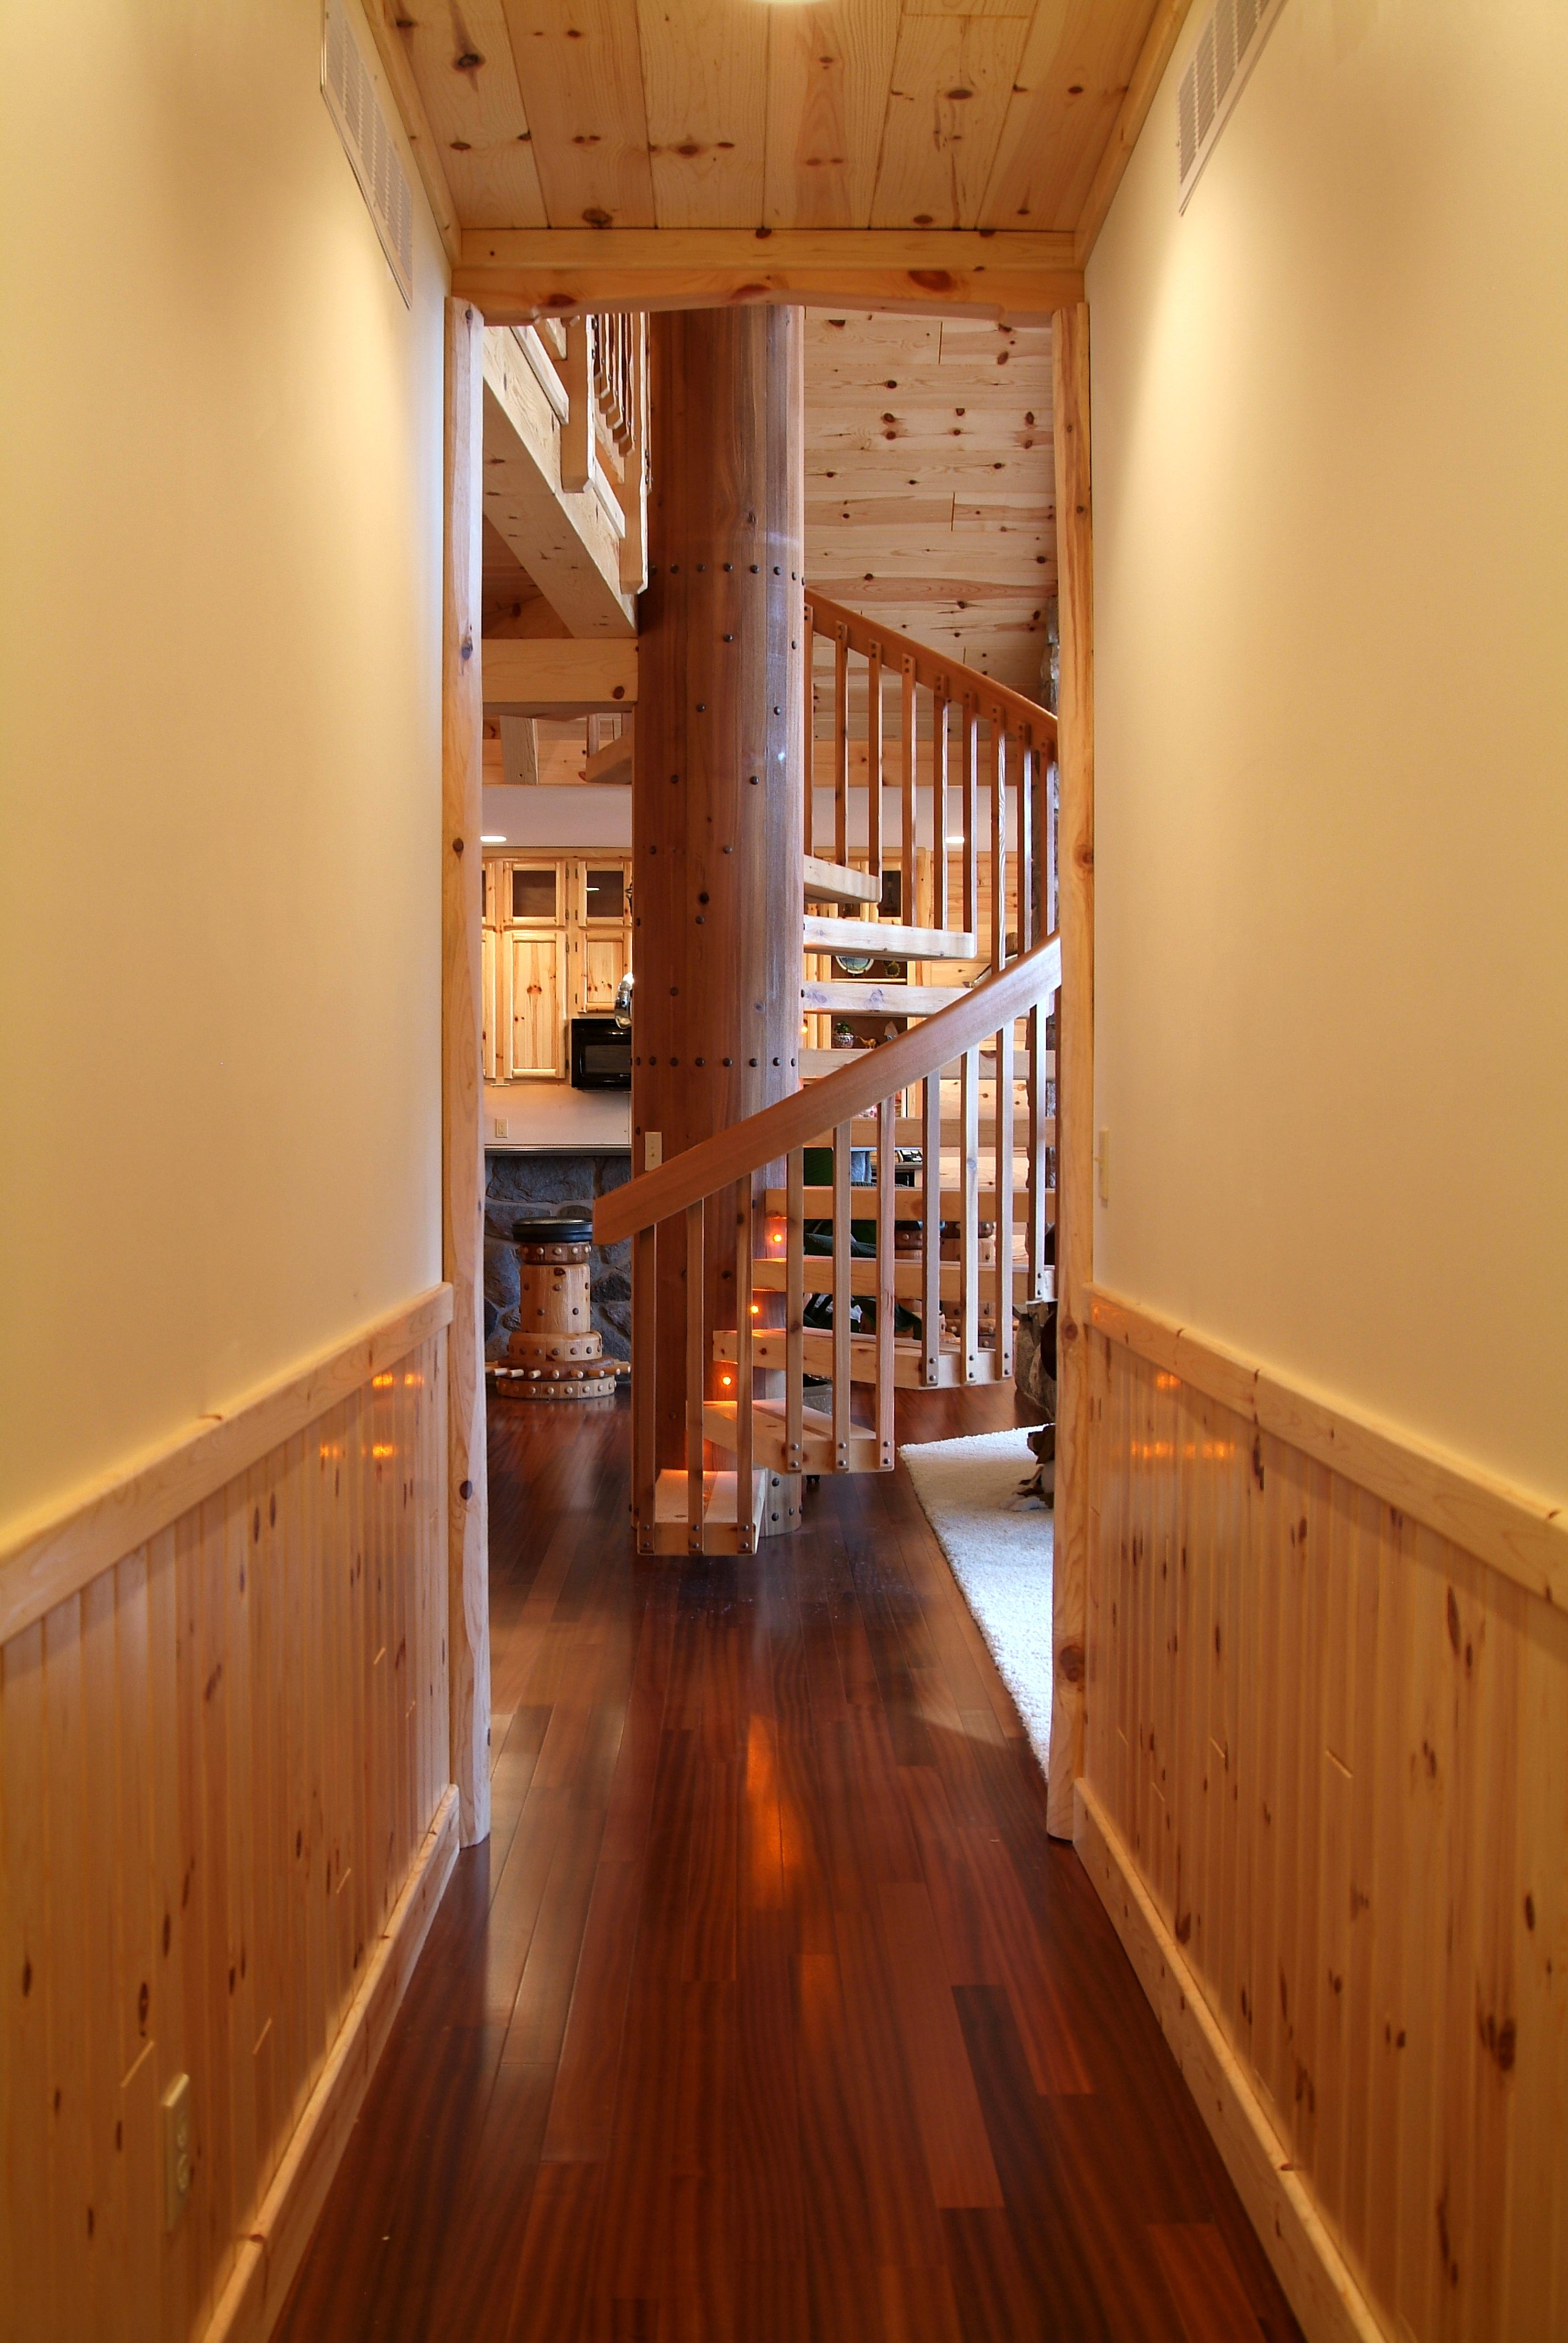 Hallway With Vertical Knotty Pine Paneling And Spiral Staircase Knotty Pine Walls Knotty Pine Paneling Wood Wainscoting